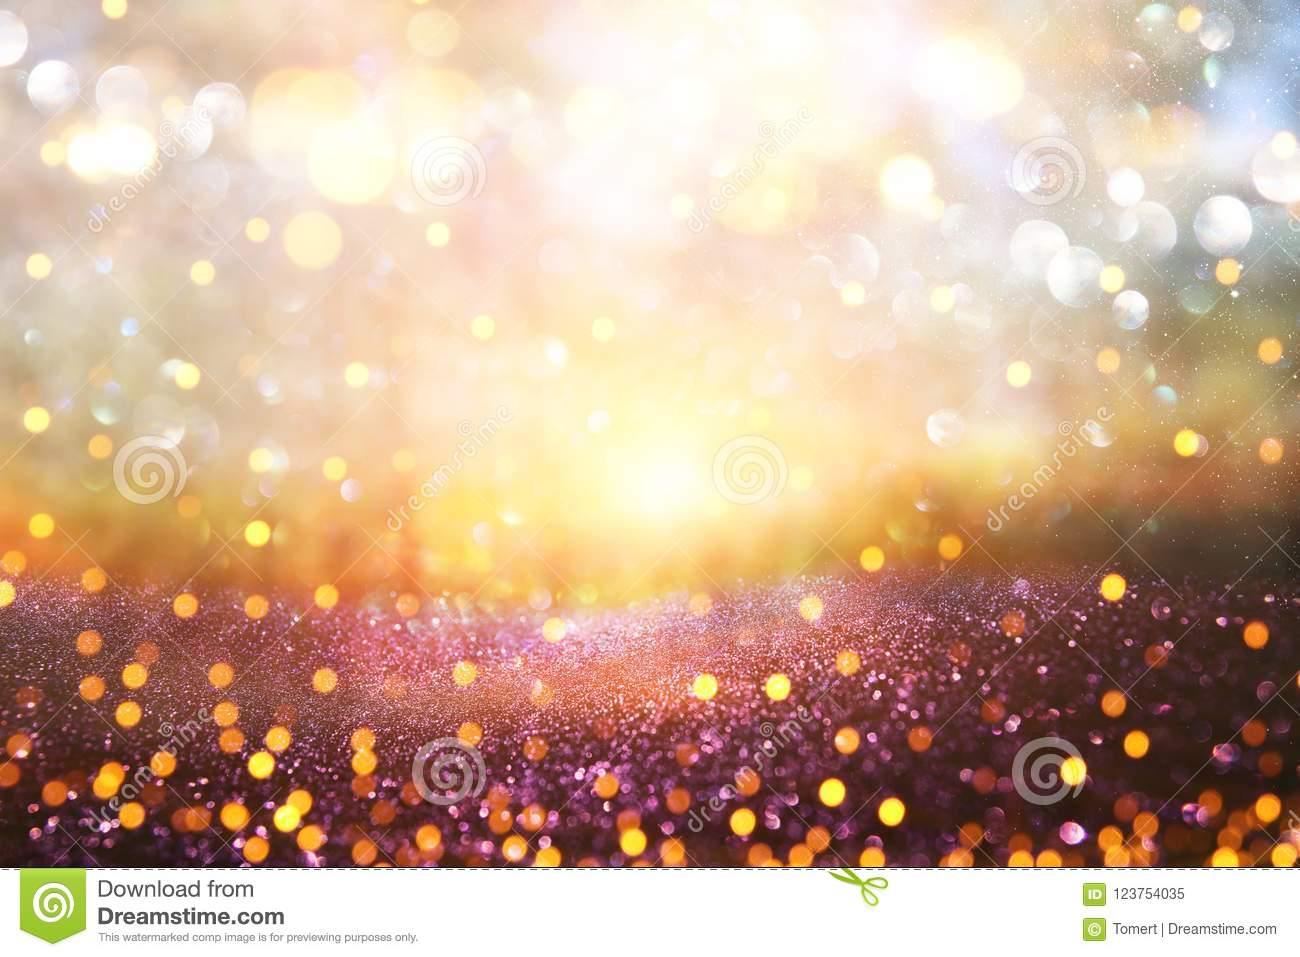 Blurred abstract photo of light burst among trees and glitter go